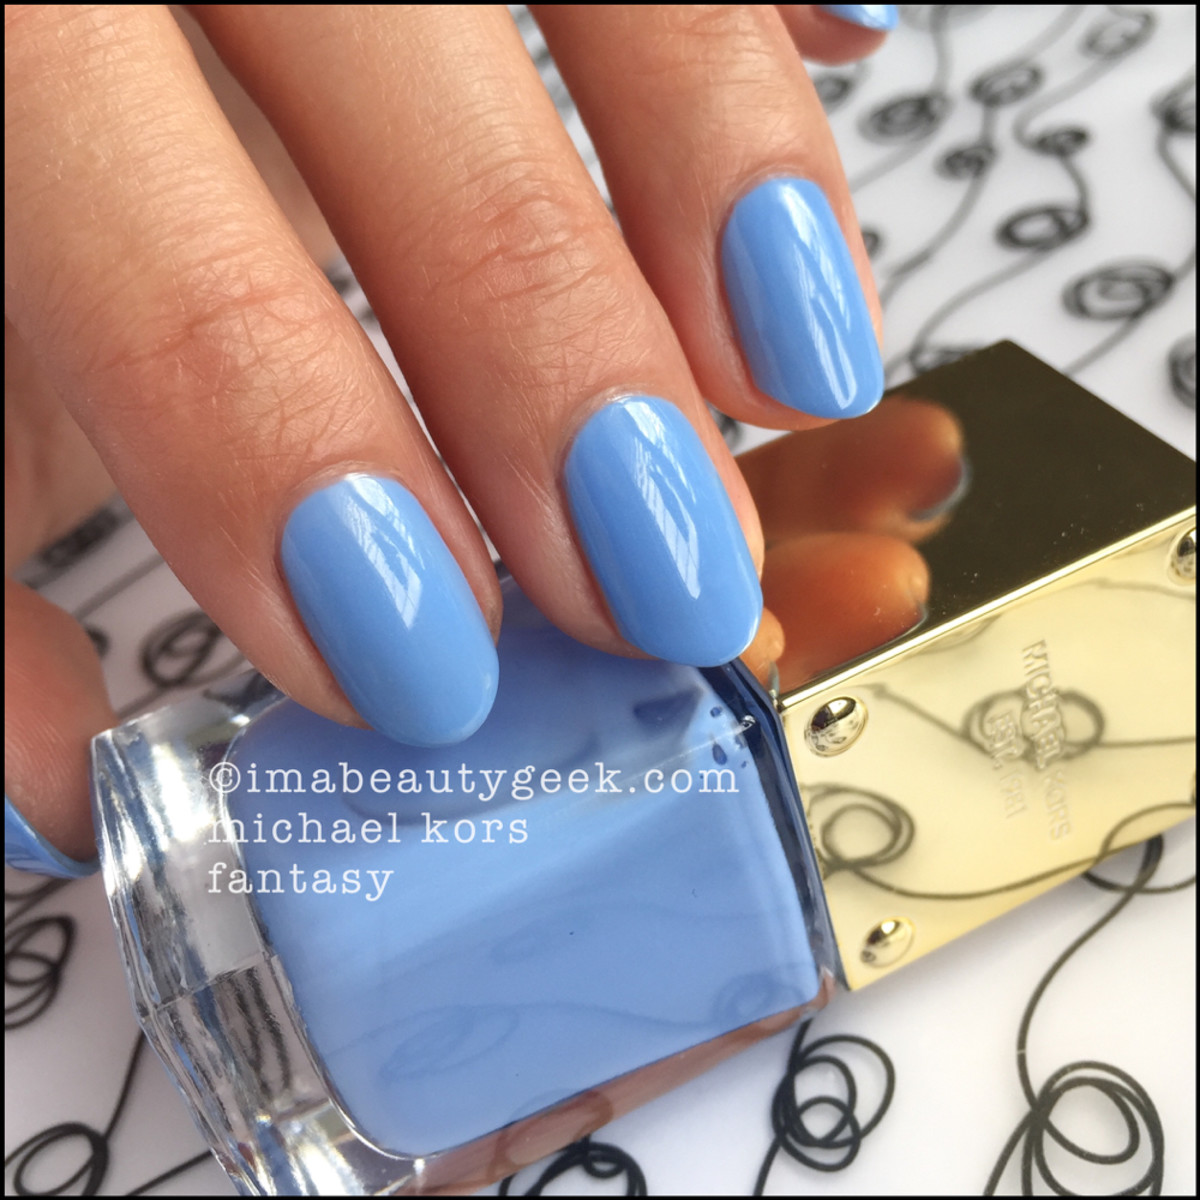 Michael Kors Fantasy Nail Polish Swatch Beautygeeks